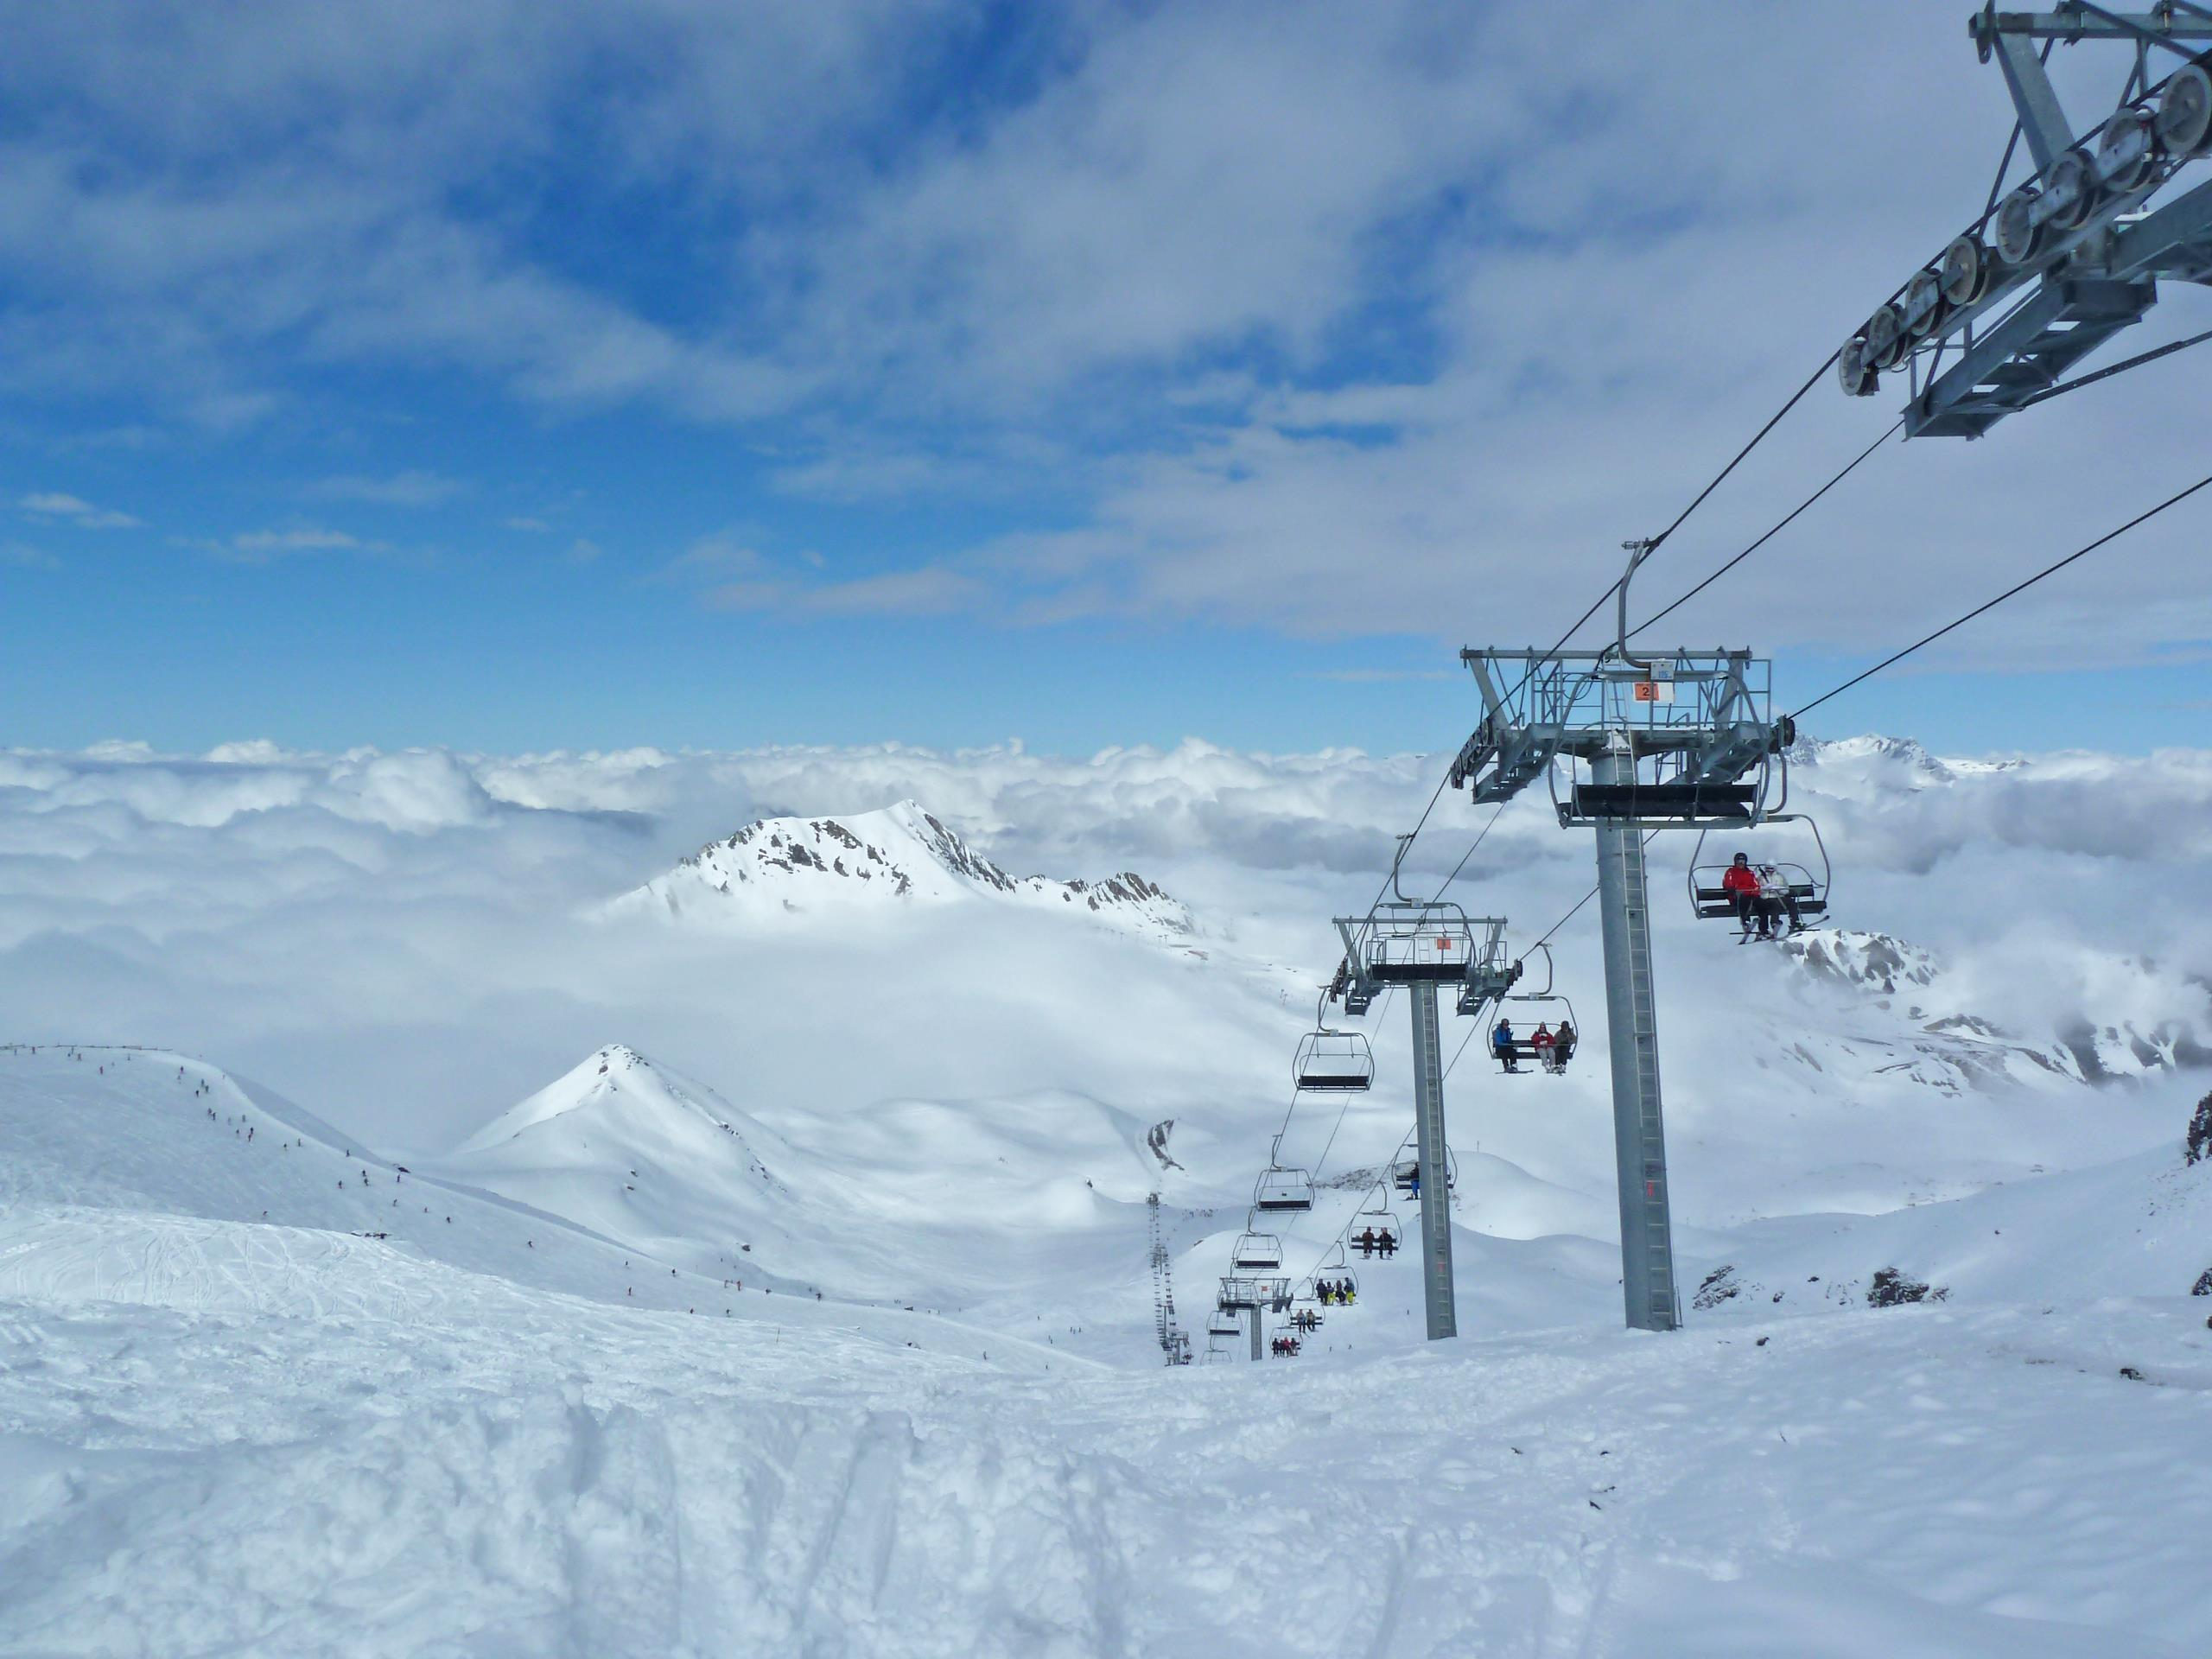 Paradiski Ski Slopes - Peisey Vallandry